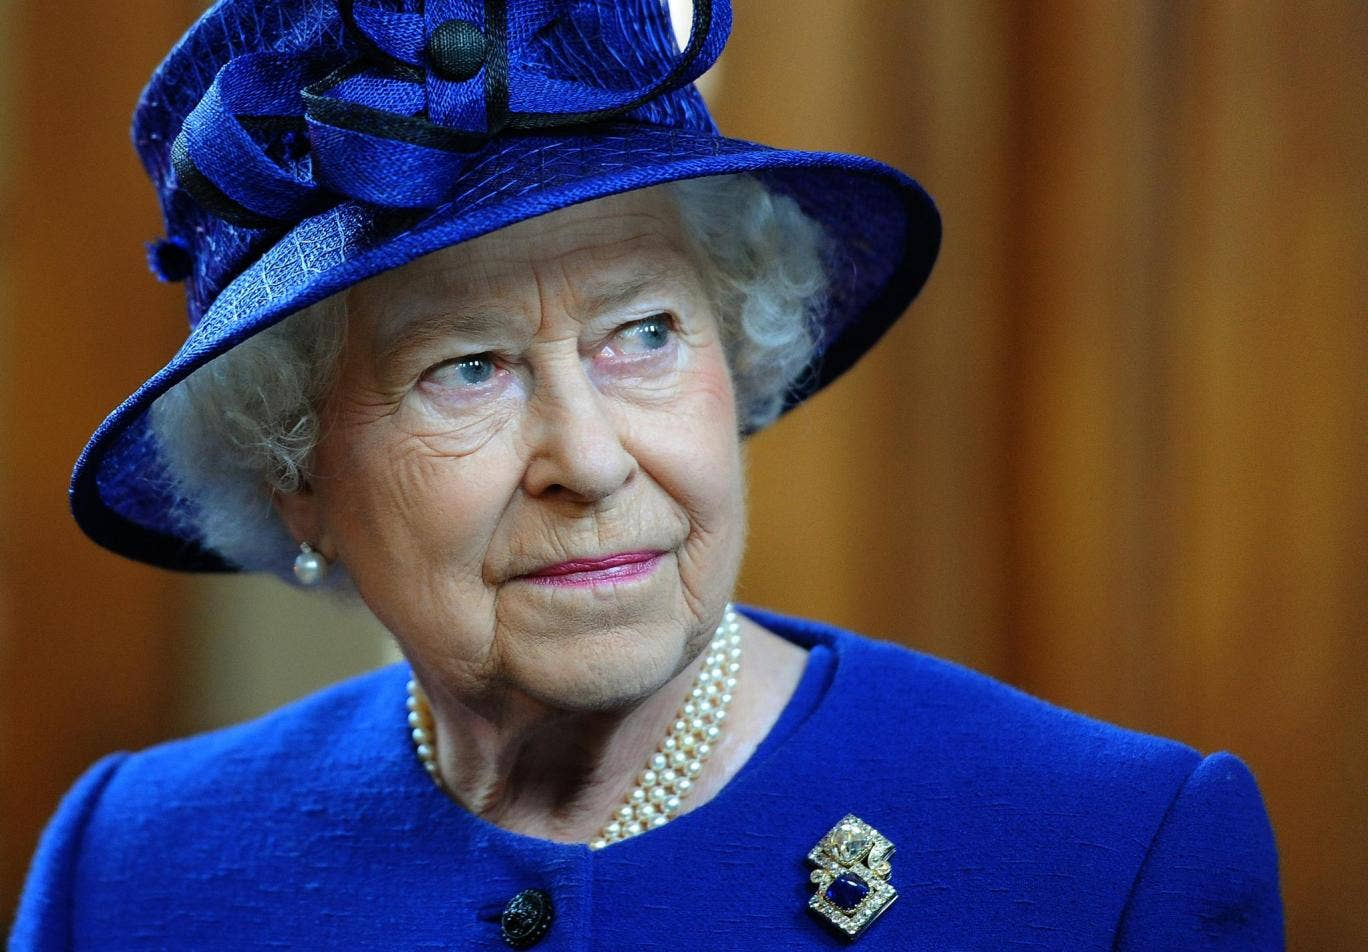 The Queen of England will be the subject of a new Netflix original drama called The Crown